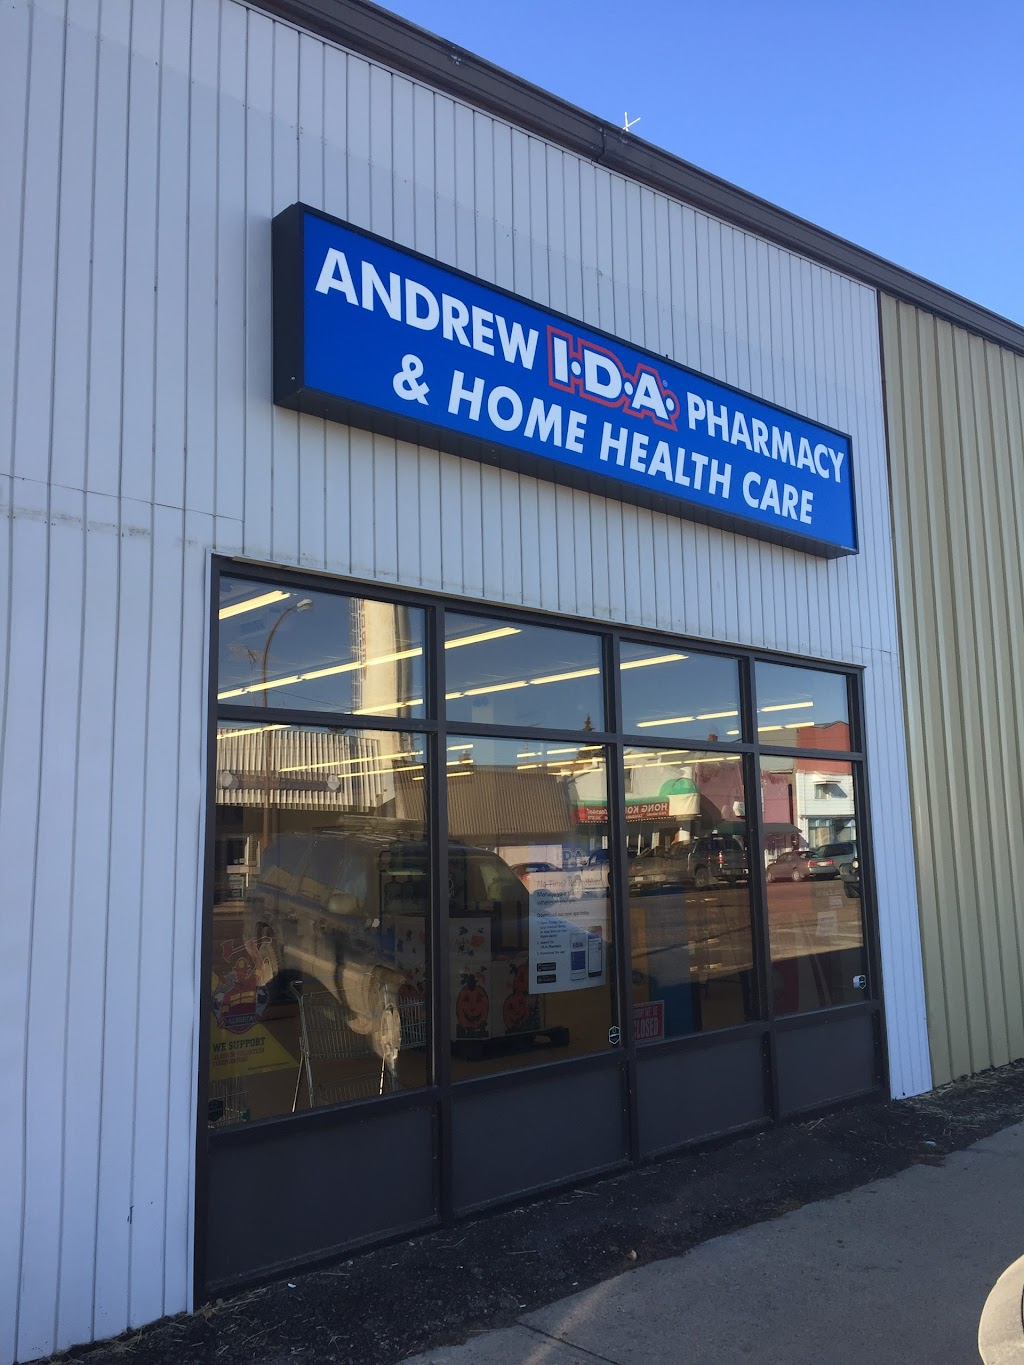 Andrew Pharmacy & Home Health Care | health | 5022 51 St, Andrew, AB T0B 0C0, Canada | 7803653832 OR +1 780-365-3832